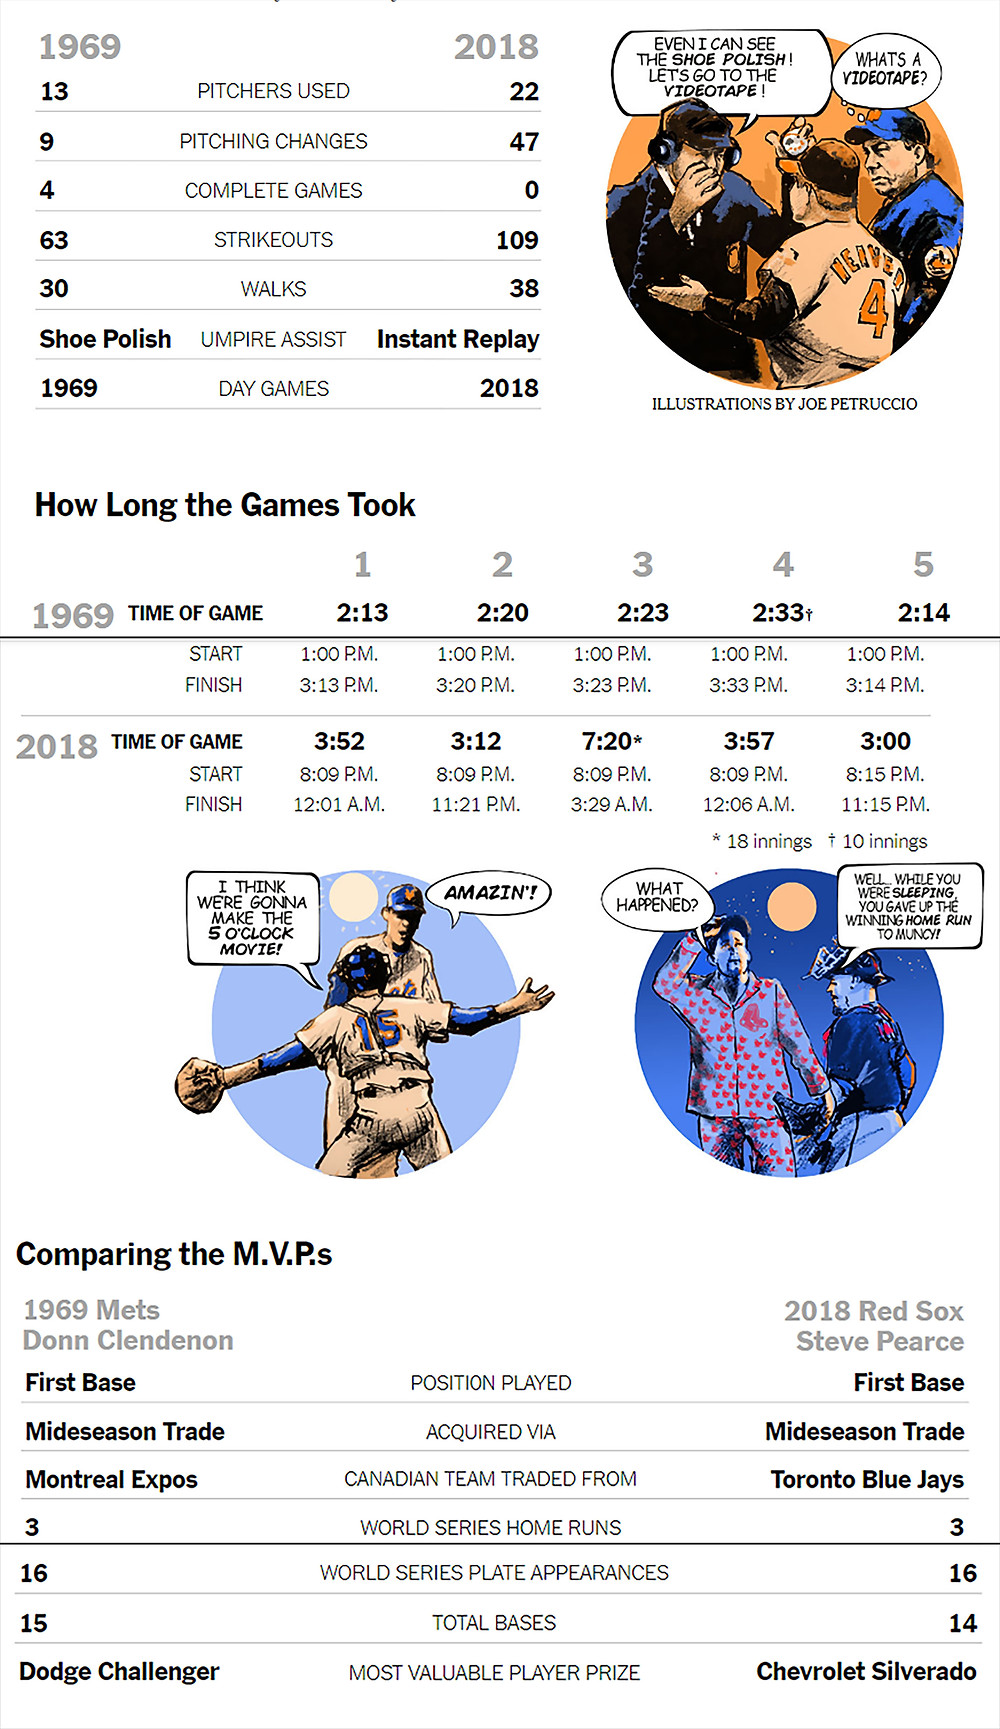 Comparing the Series 1969 vs 2018 Mets Illustrations by Joe Petruccio